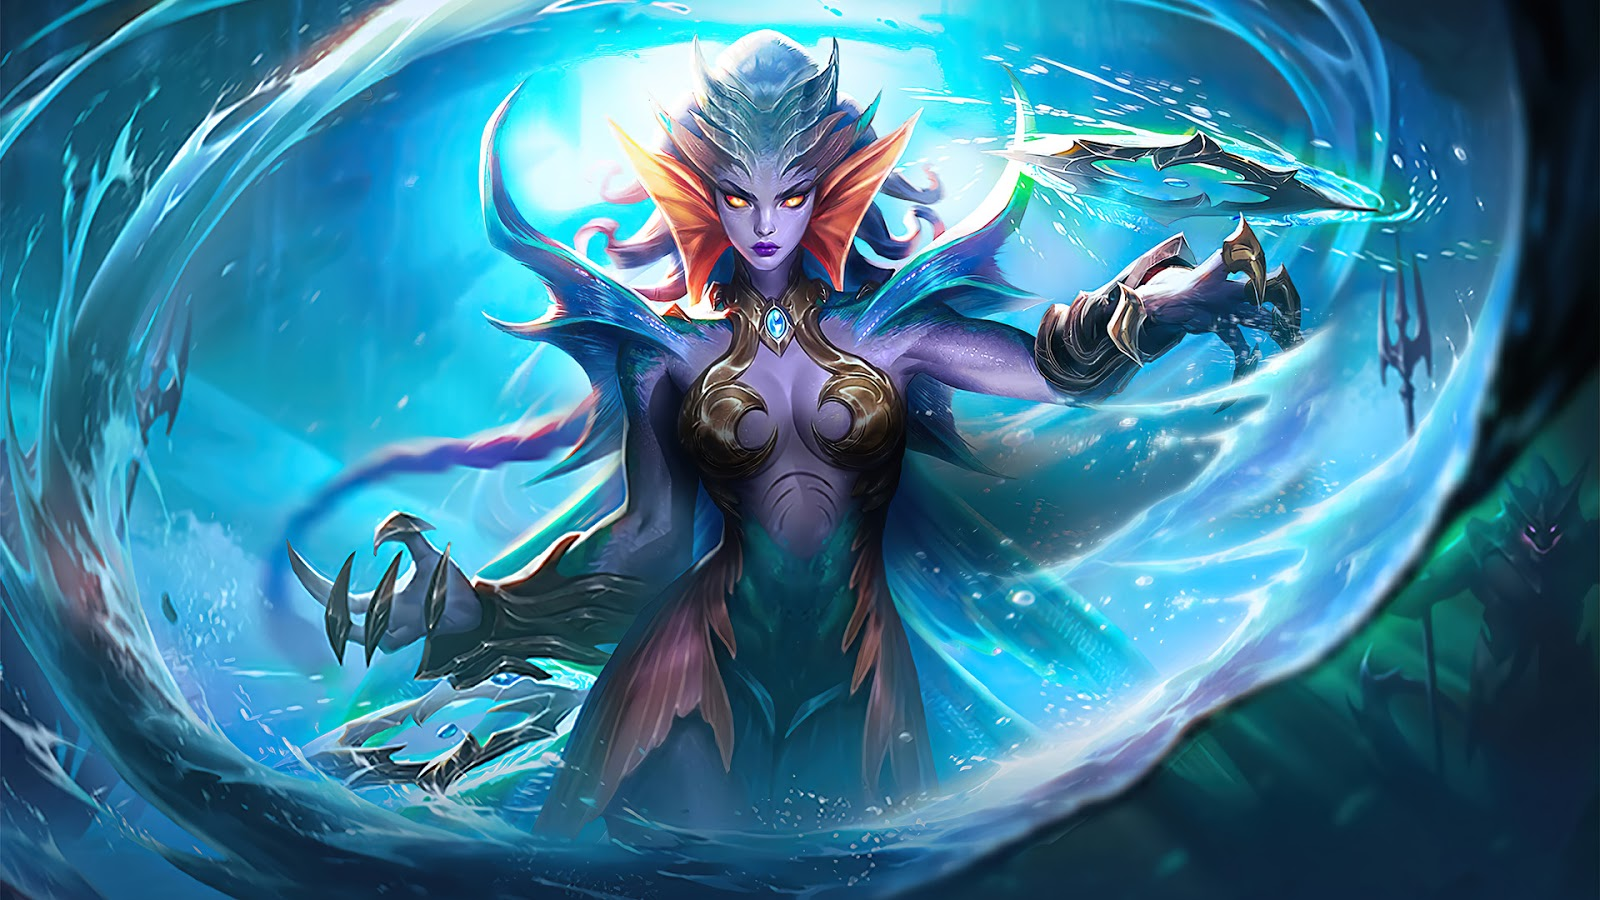 Wallpaper Karrie Gill Girl Skin Mobile Legends HD for PC